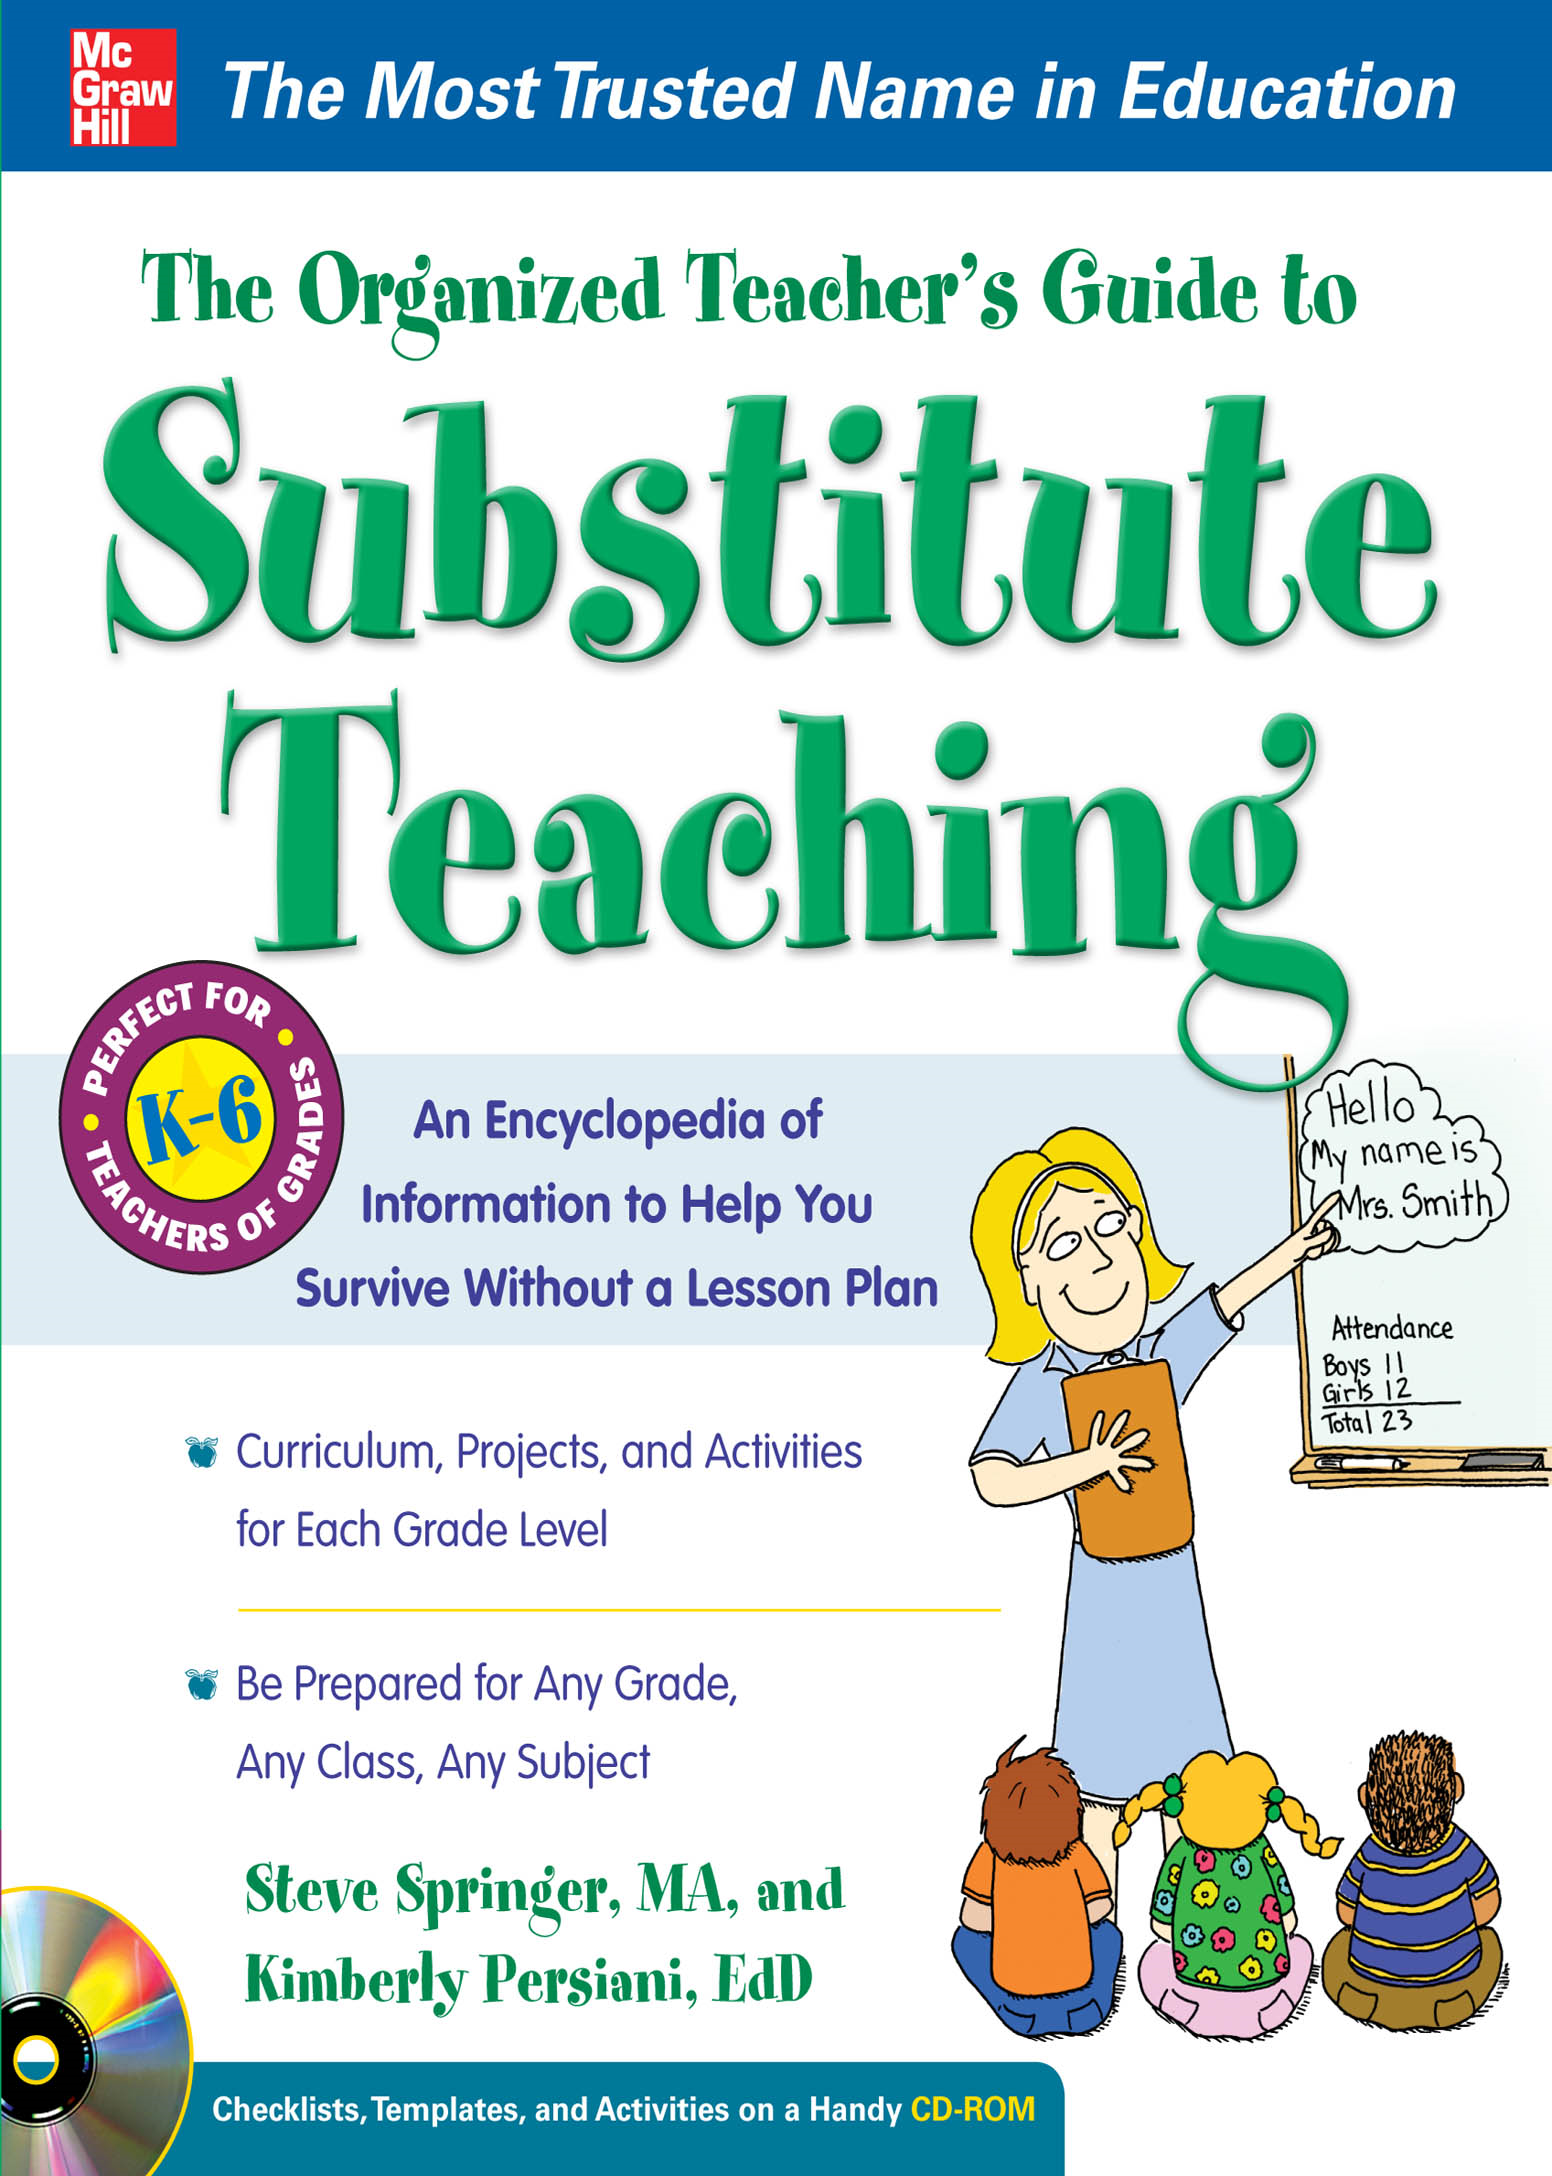 The Organized Teacher's Guide to Substitute Teaching with CD-ROM